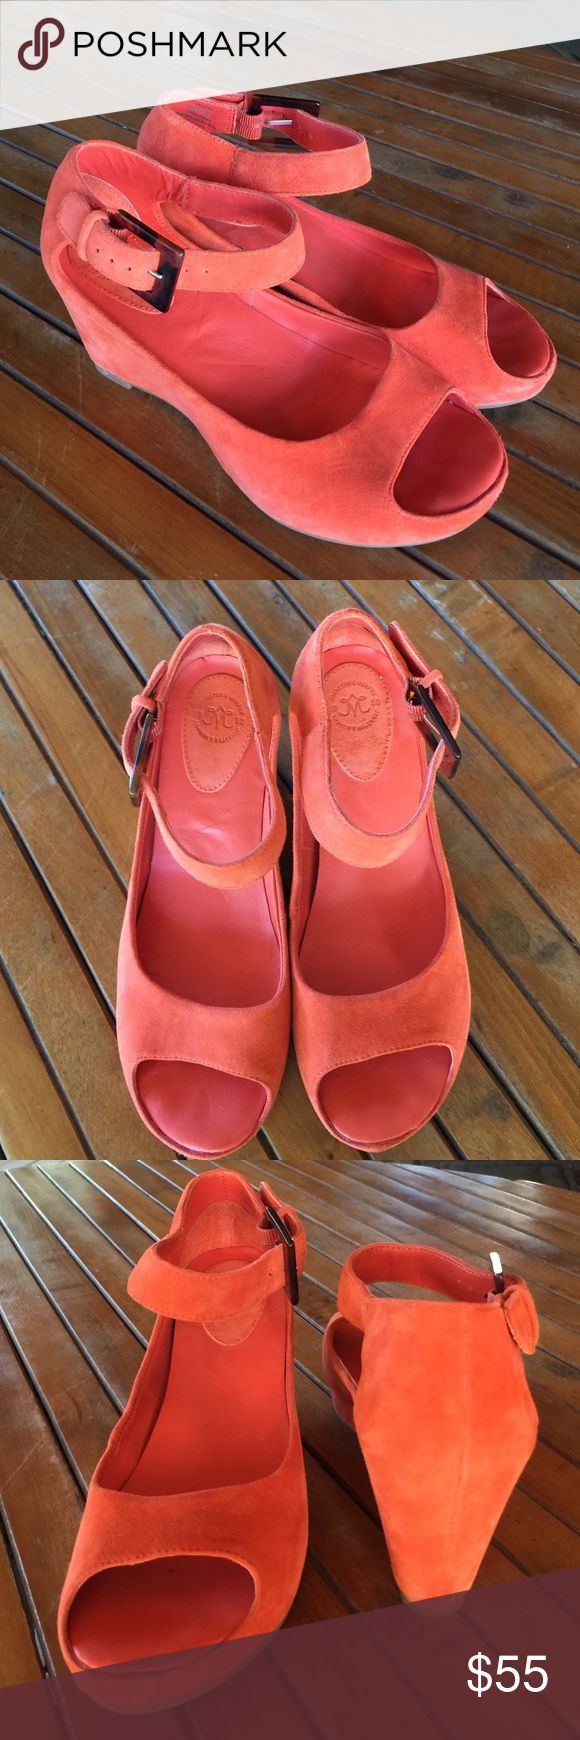 "Johnson and Murphy suede wedge Comfortable footbed, 3"" heel very gently worn. No toe marks clean on all sides. Tortoise buckle. Coral color. Enjoy! Johnson and Murphy Shoes Platforms"